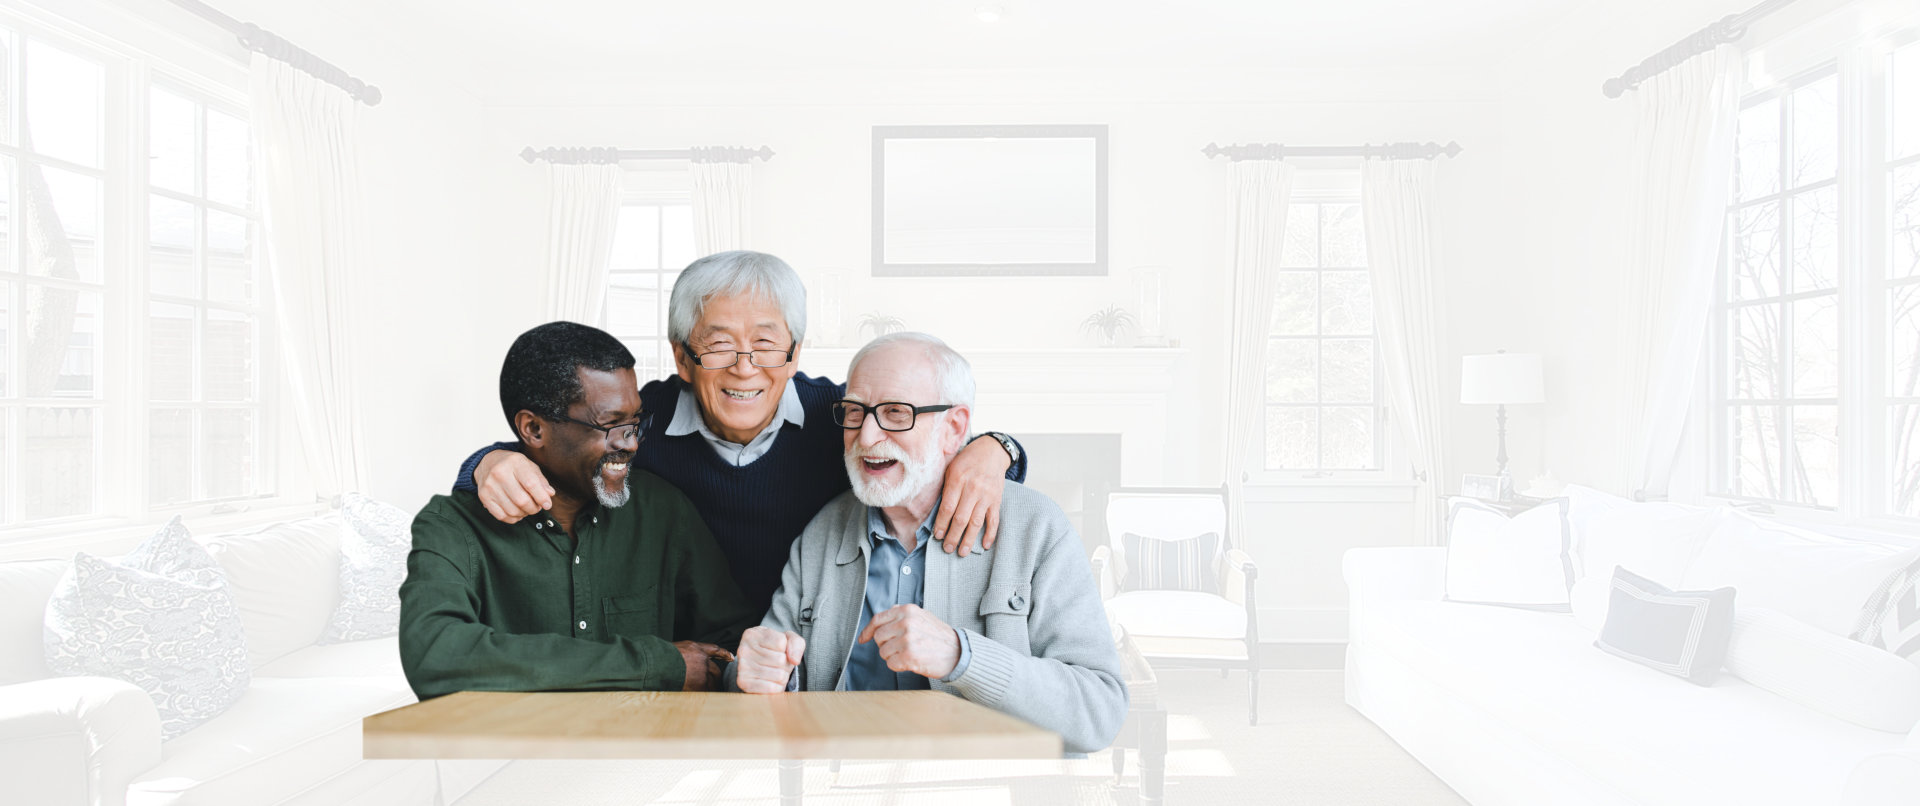 portrait of three seniors laughing together